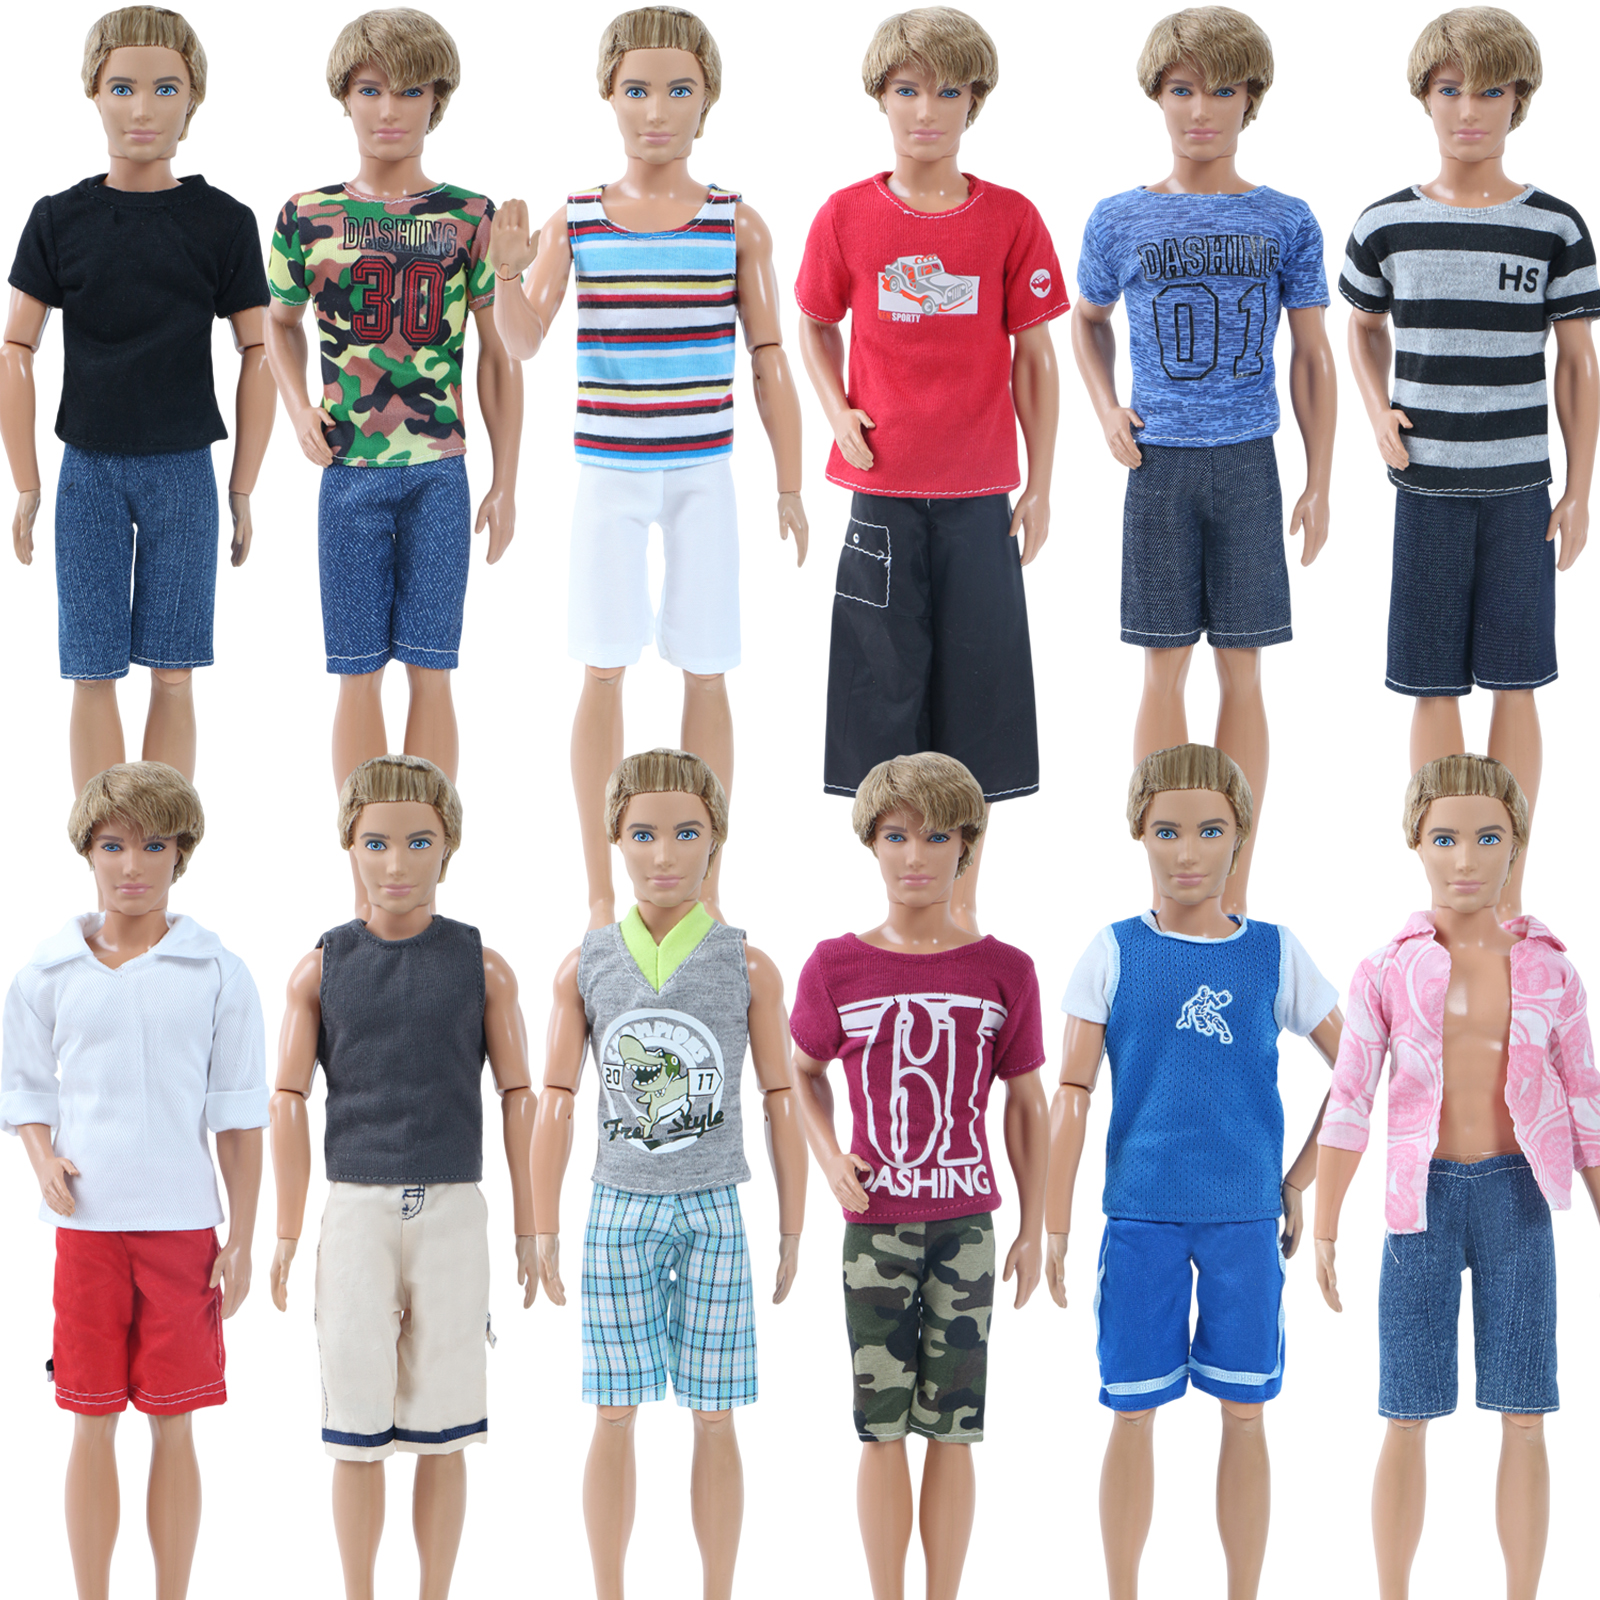 3 Set Random Outfits Daily Casual Sports Wear Short Sleeves T Shirt + Shorts Summer Clothes For Barbie Doll Ken Accessories Toy